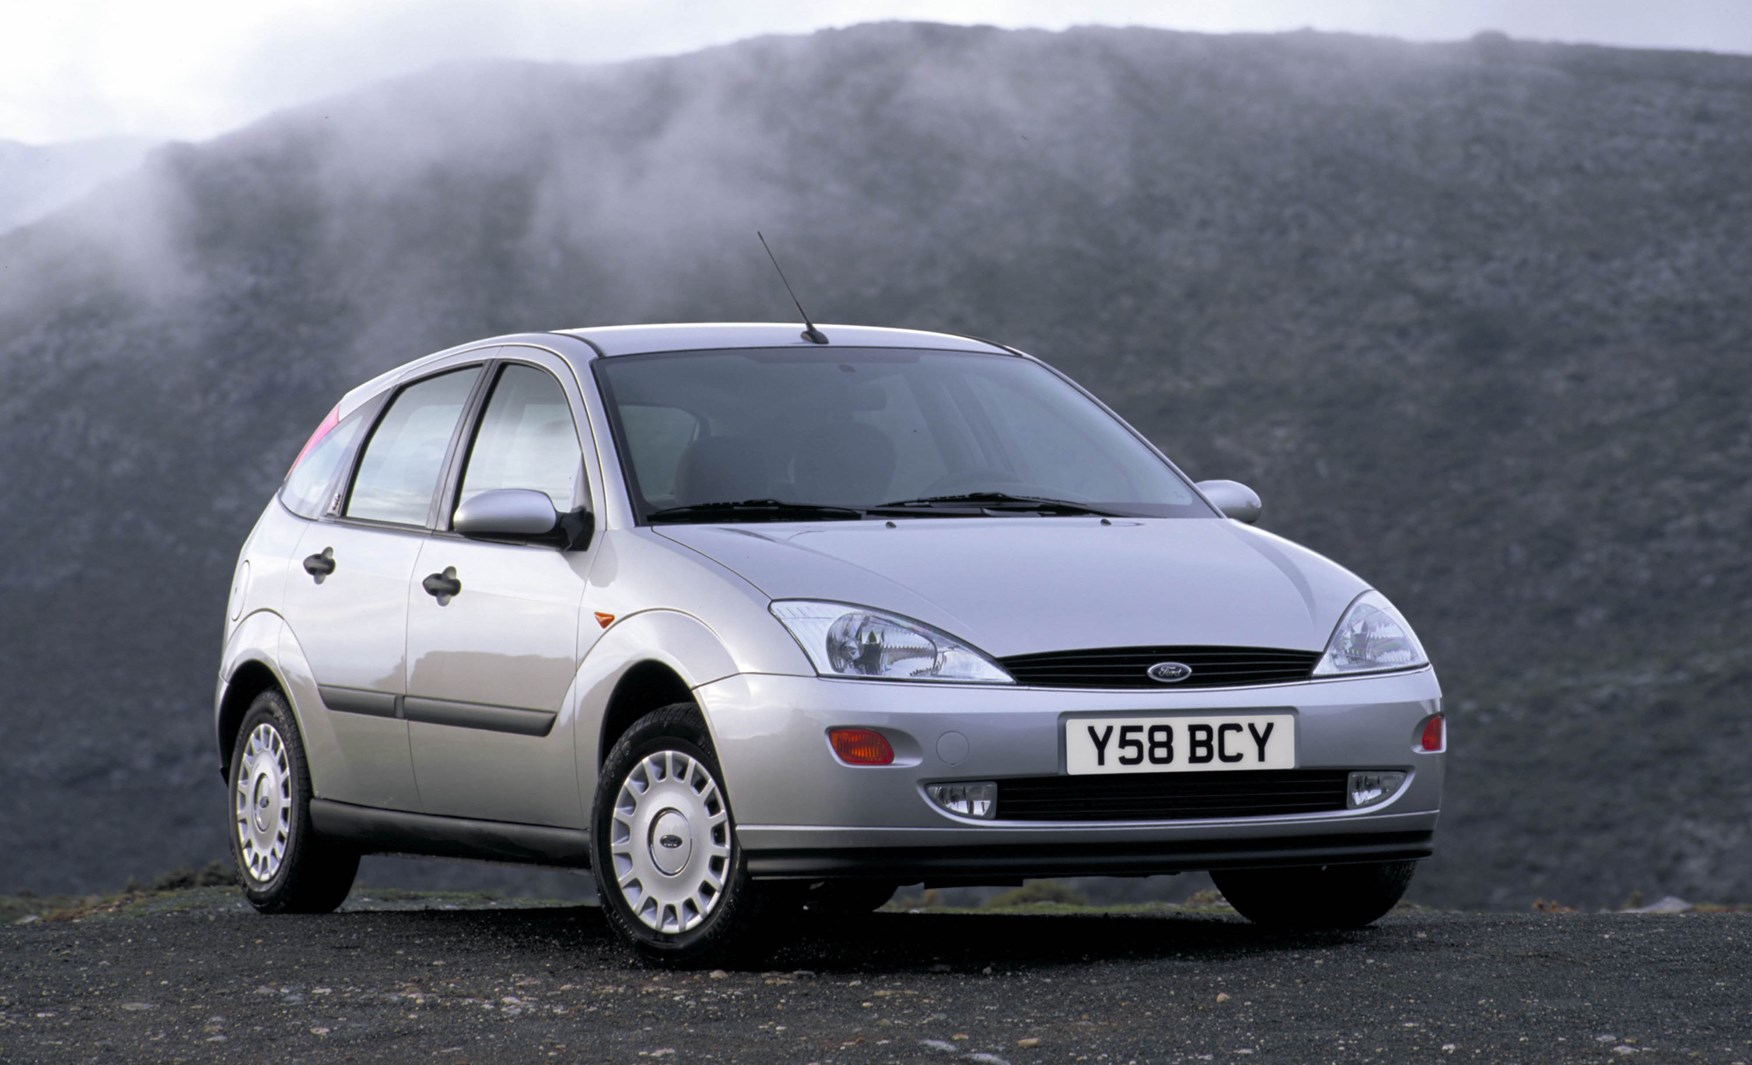 Used Ford Focus St >> Ford Focus Hatchback (1998 - 2004) Photos | Parkers